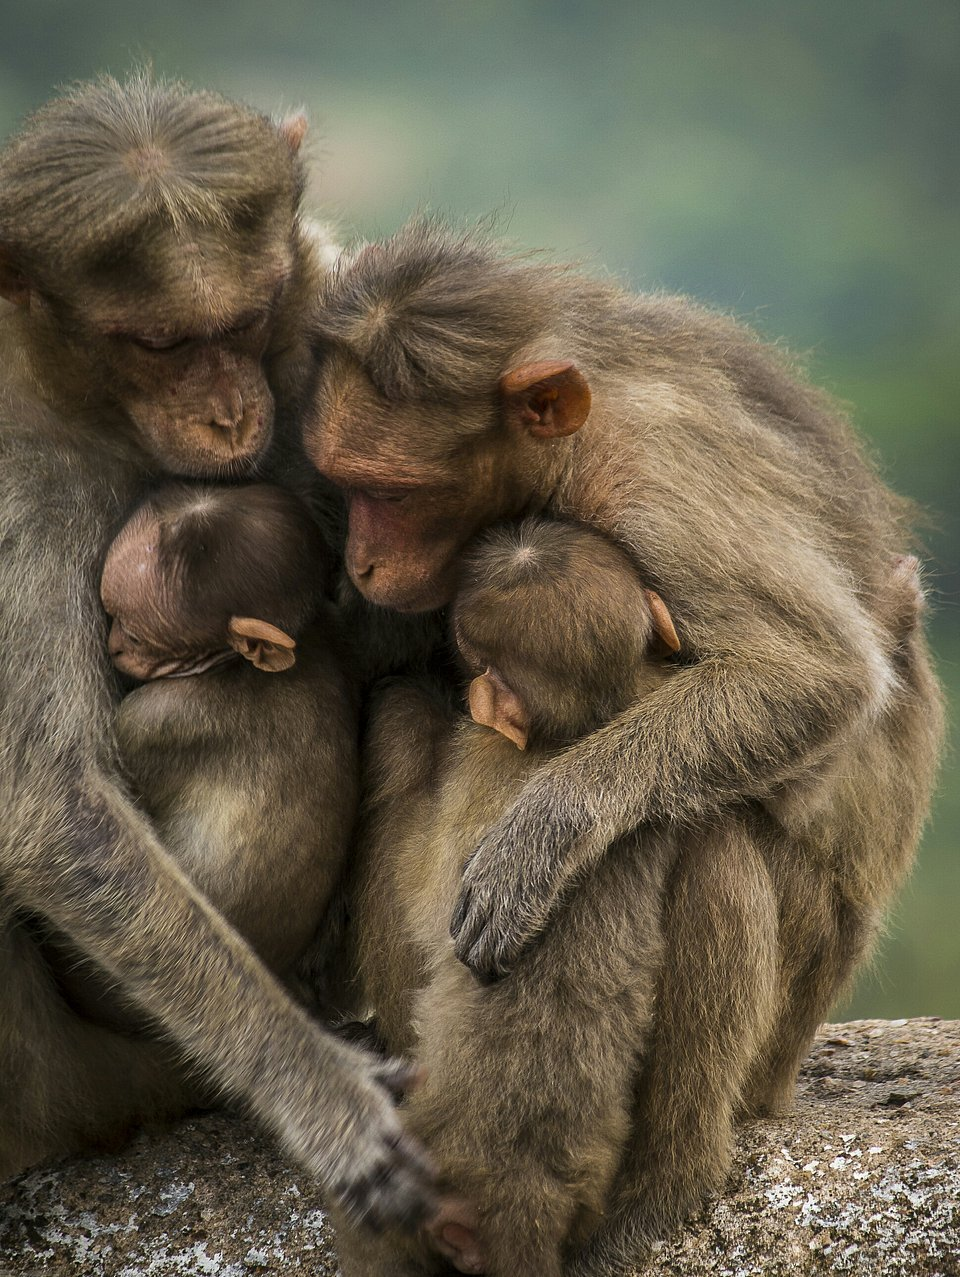 Macaque family hug in India (Pavan Prasad/AGORA images)